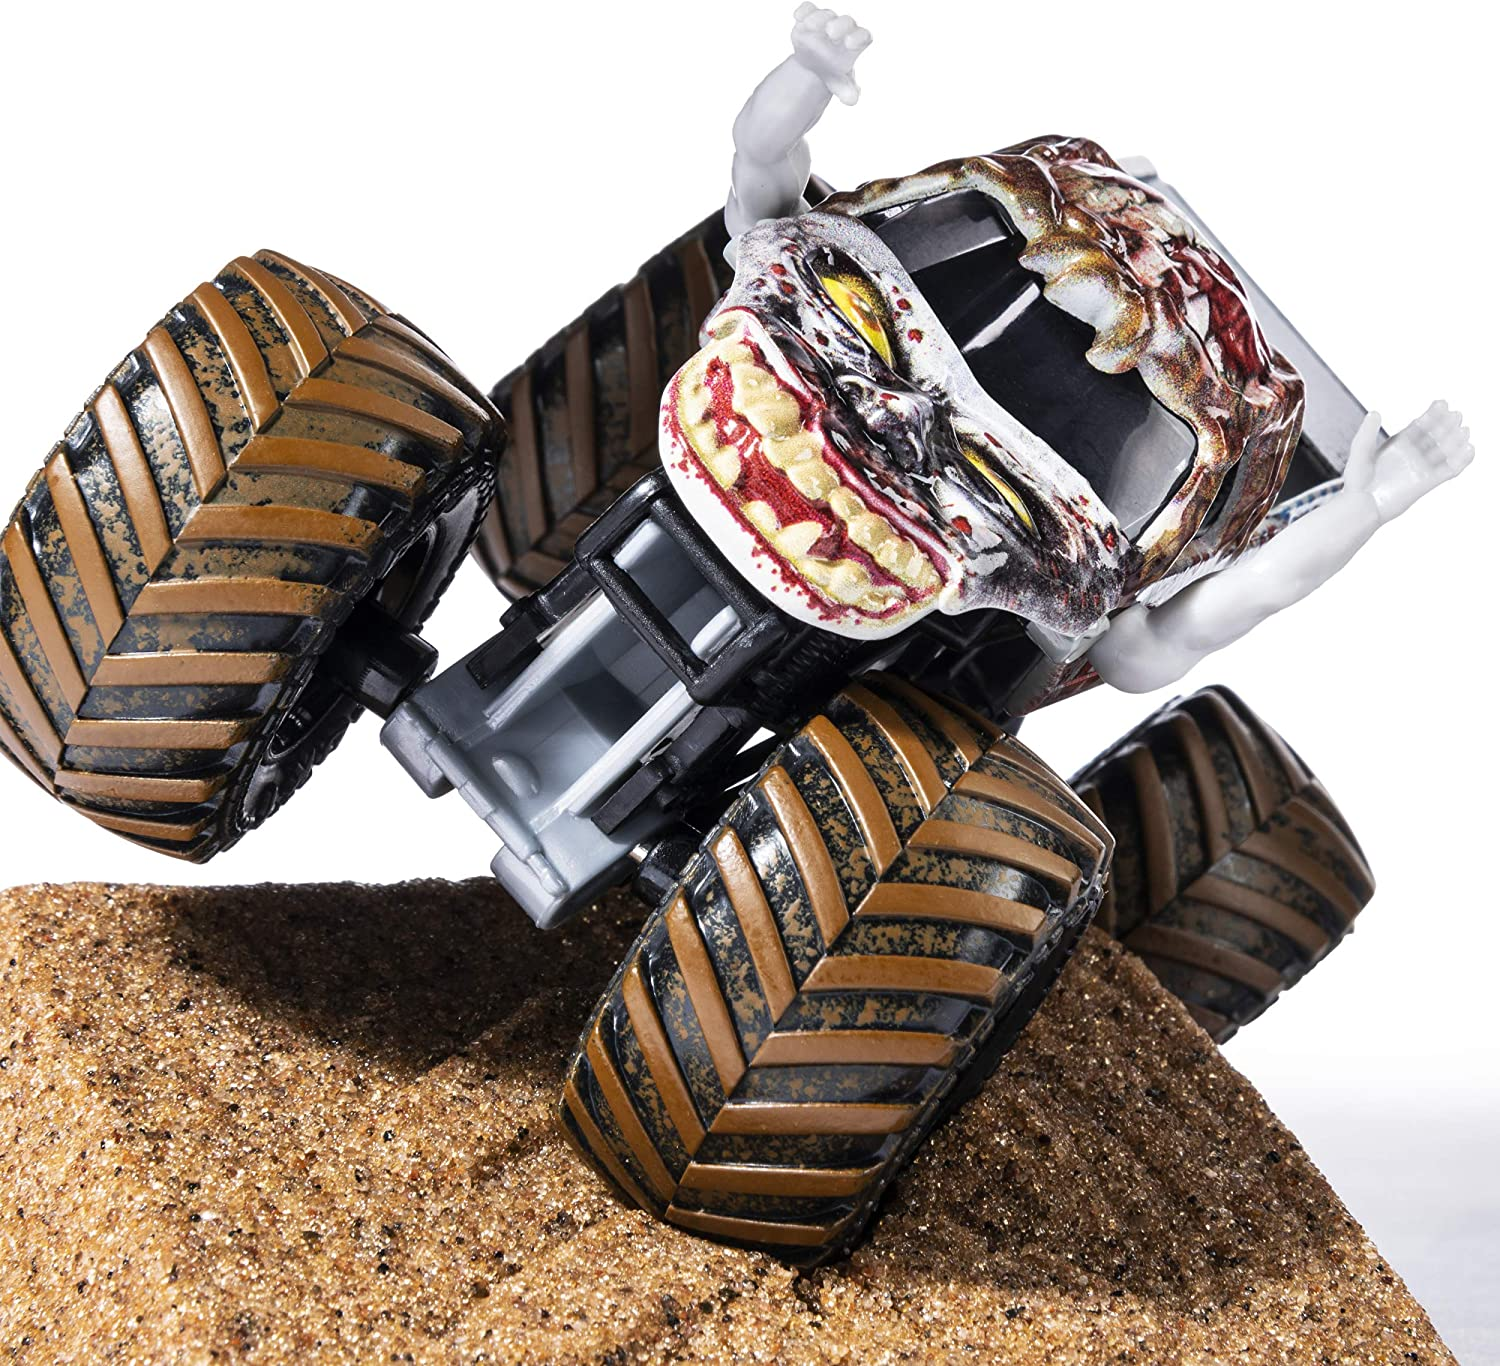 Amazon Com Monster Jam Zombie Monster Dirt Starter Set Featuring 8oz Of Monster Dirt And Official 1 64 Scale Die Cast Monster Jam Truck Multicolored Toys Games